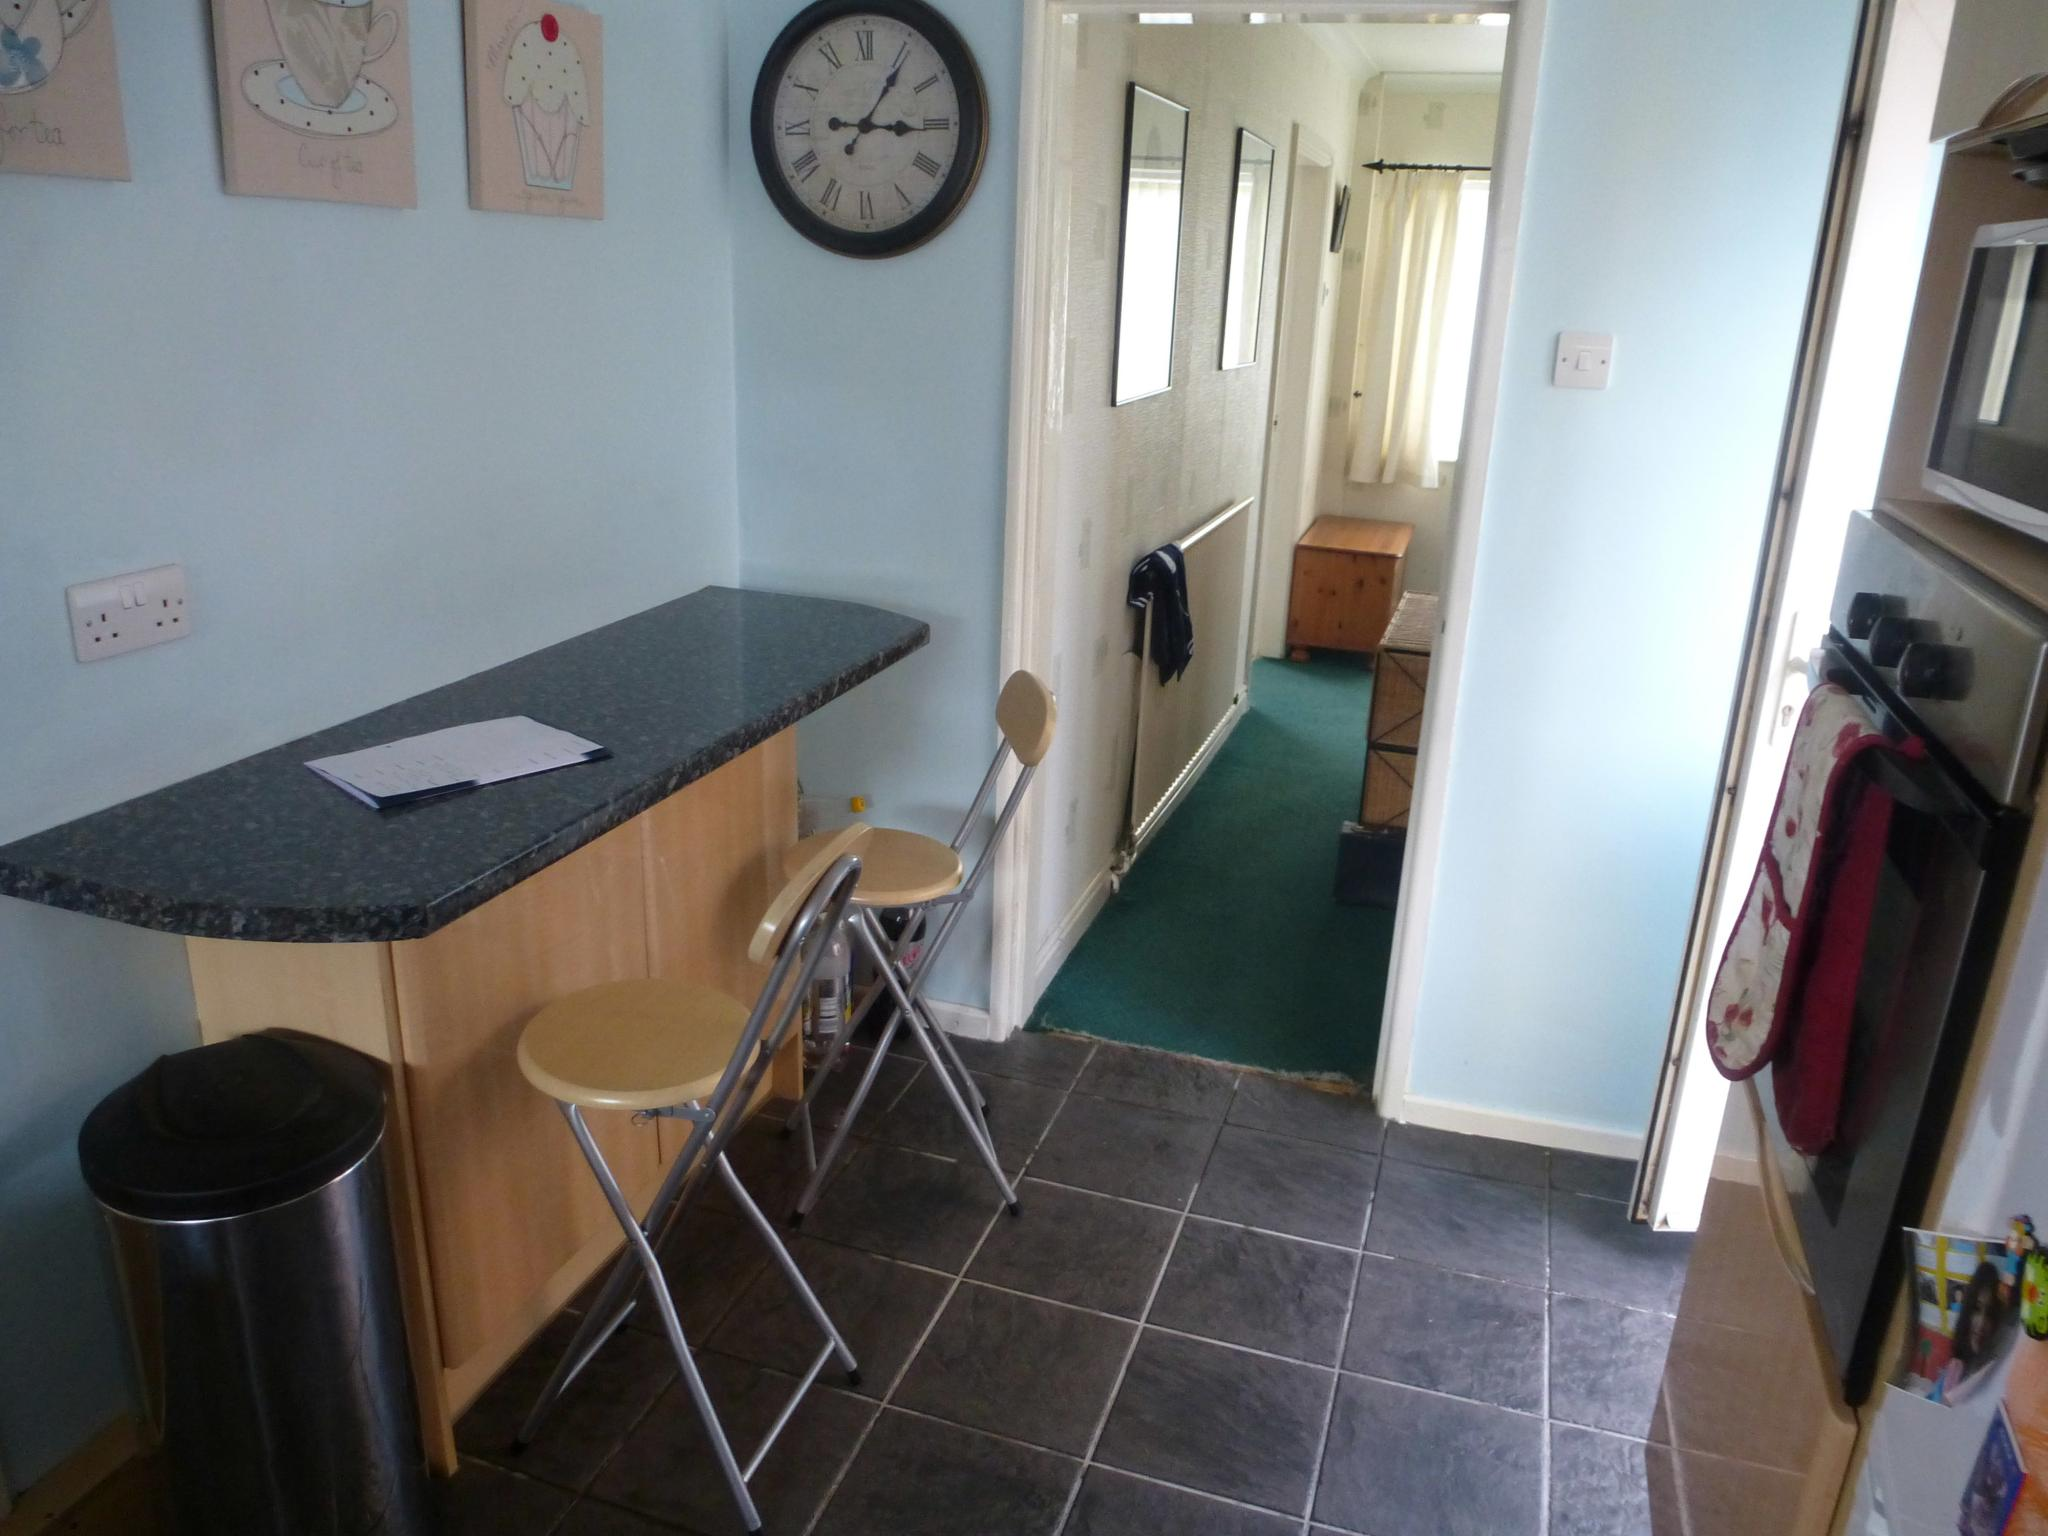 Image 2 of 2 of KITCHEN, on Accommodation Comprising for